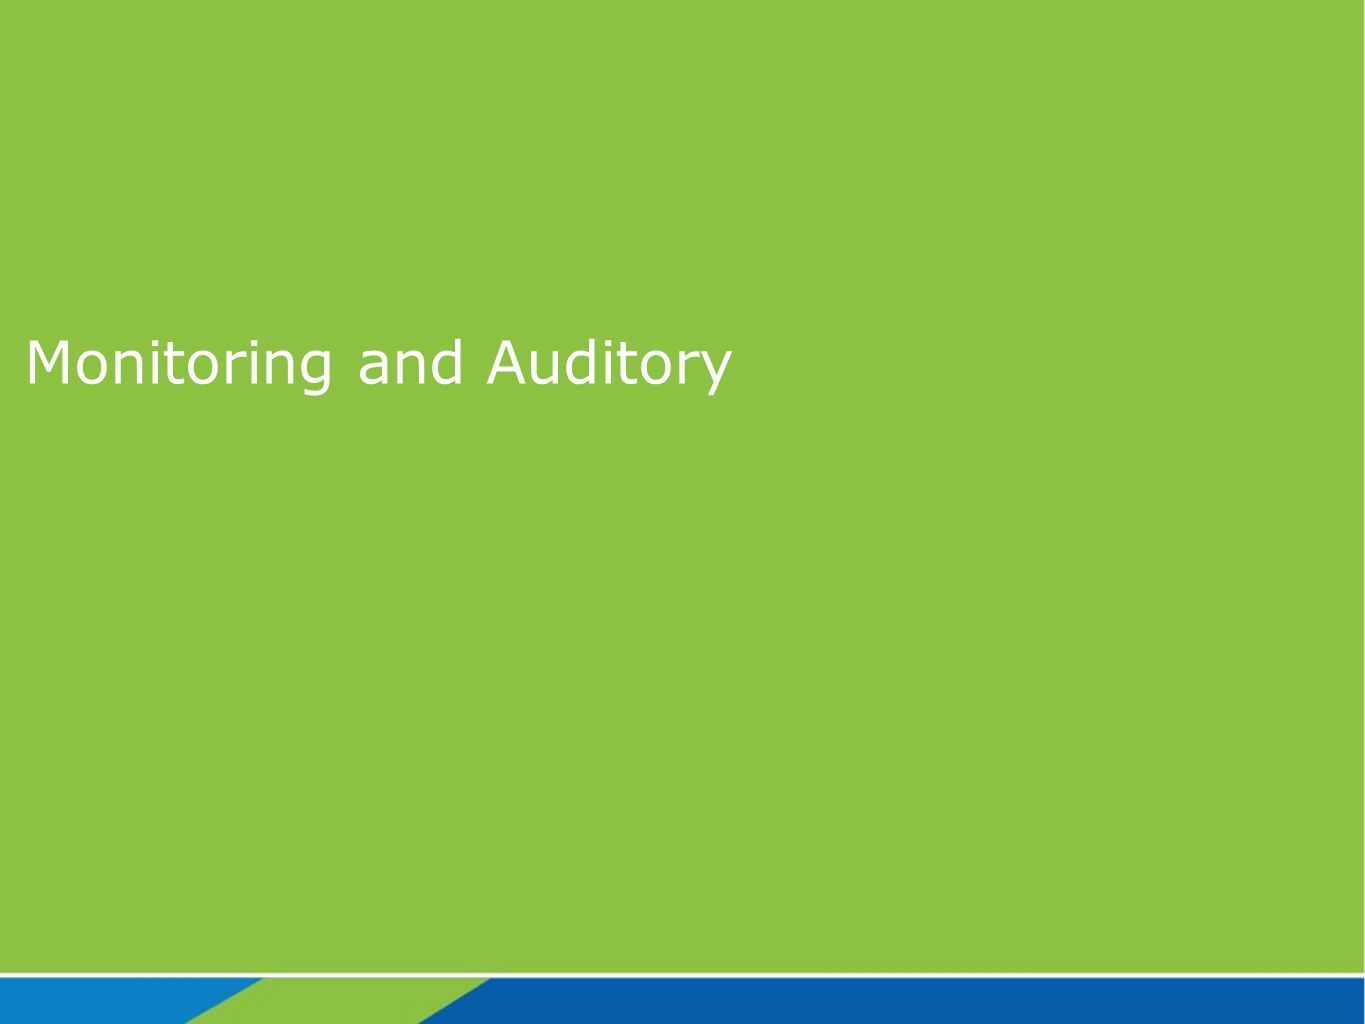 Monitoring and Auditory